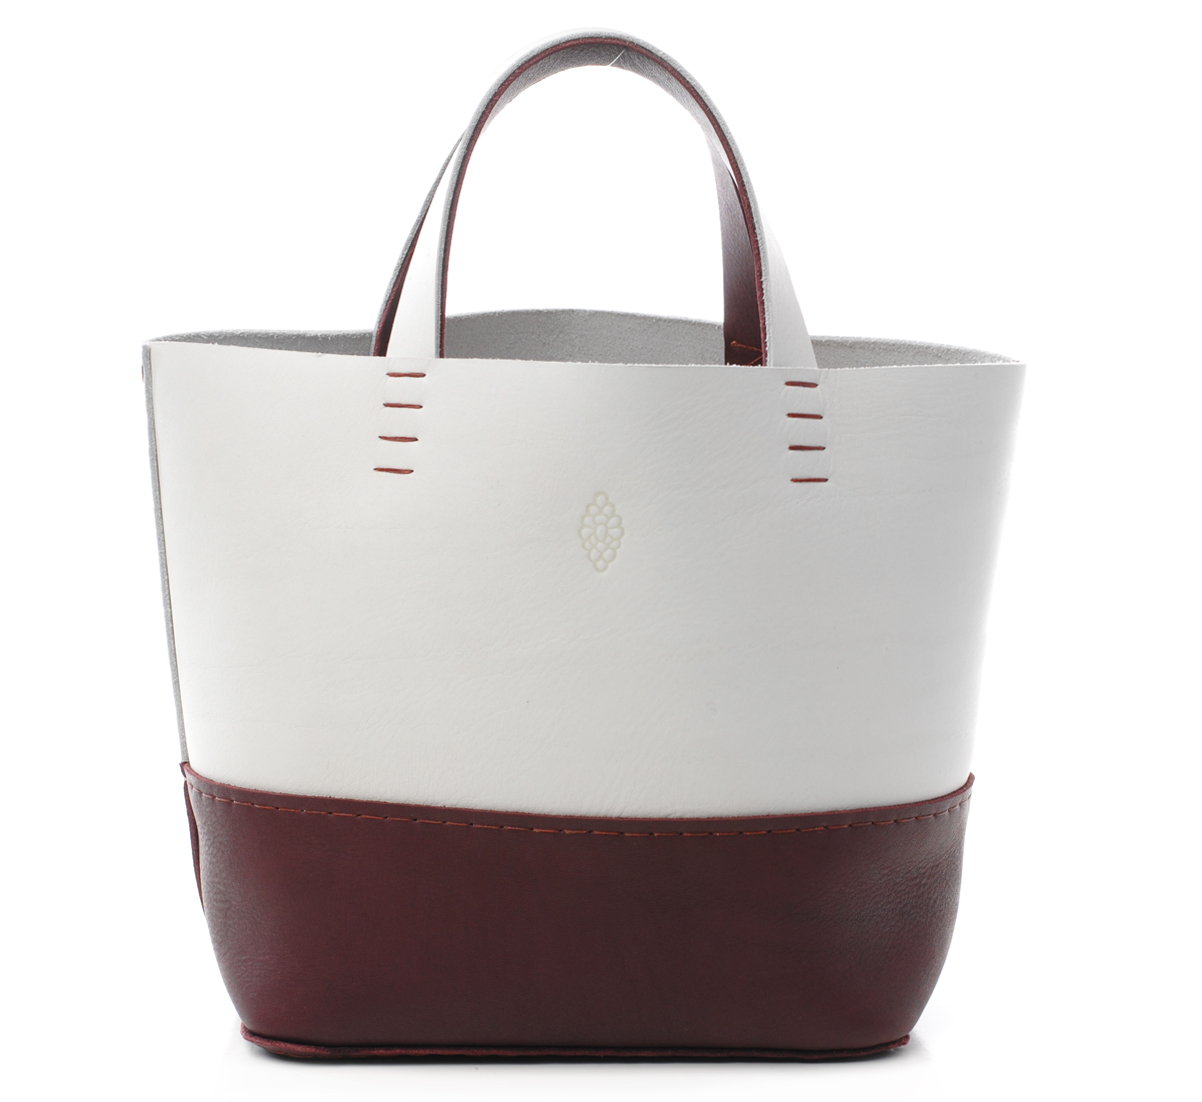 Ice white and eggplant petit basket bag duo by petite maison christiane gar - Petite maison christiane ...